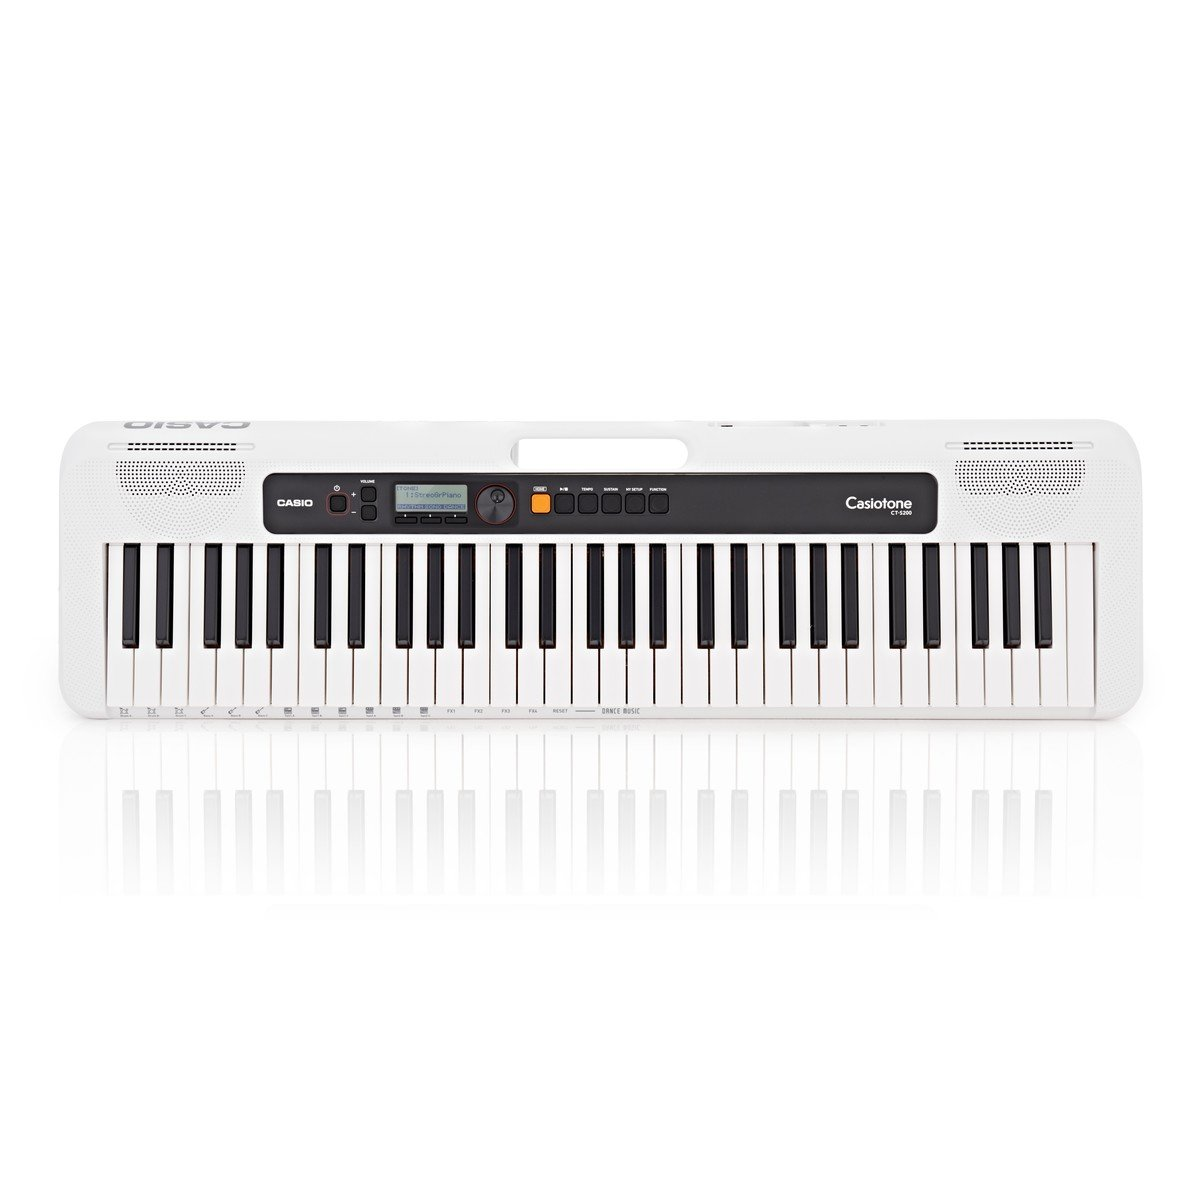 Casio CT S200 Portable Keyboard, White